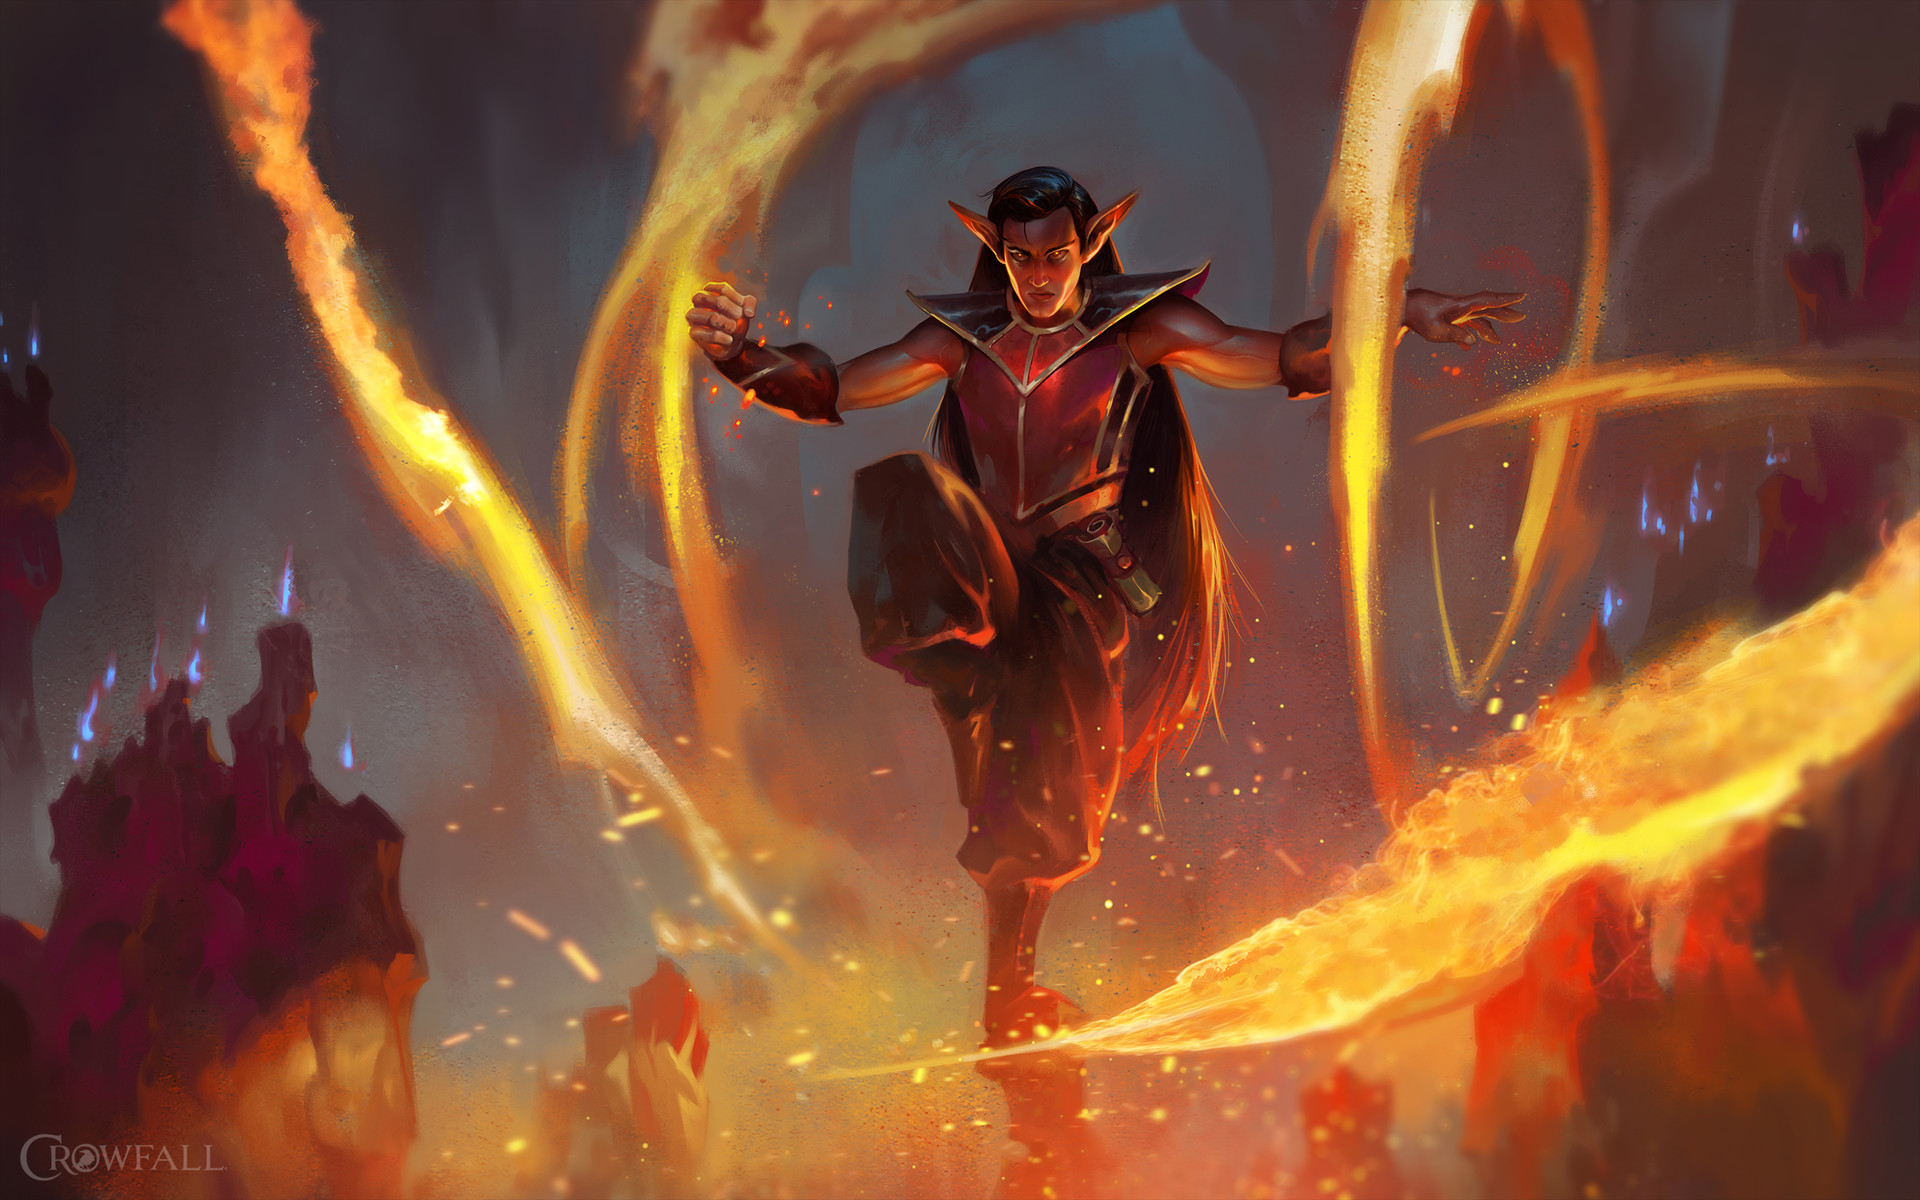 Dave Greco Digital Painting Crowfall Mage Burn Fire